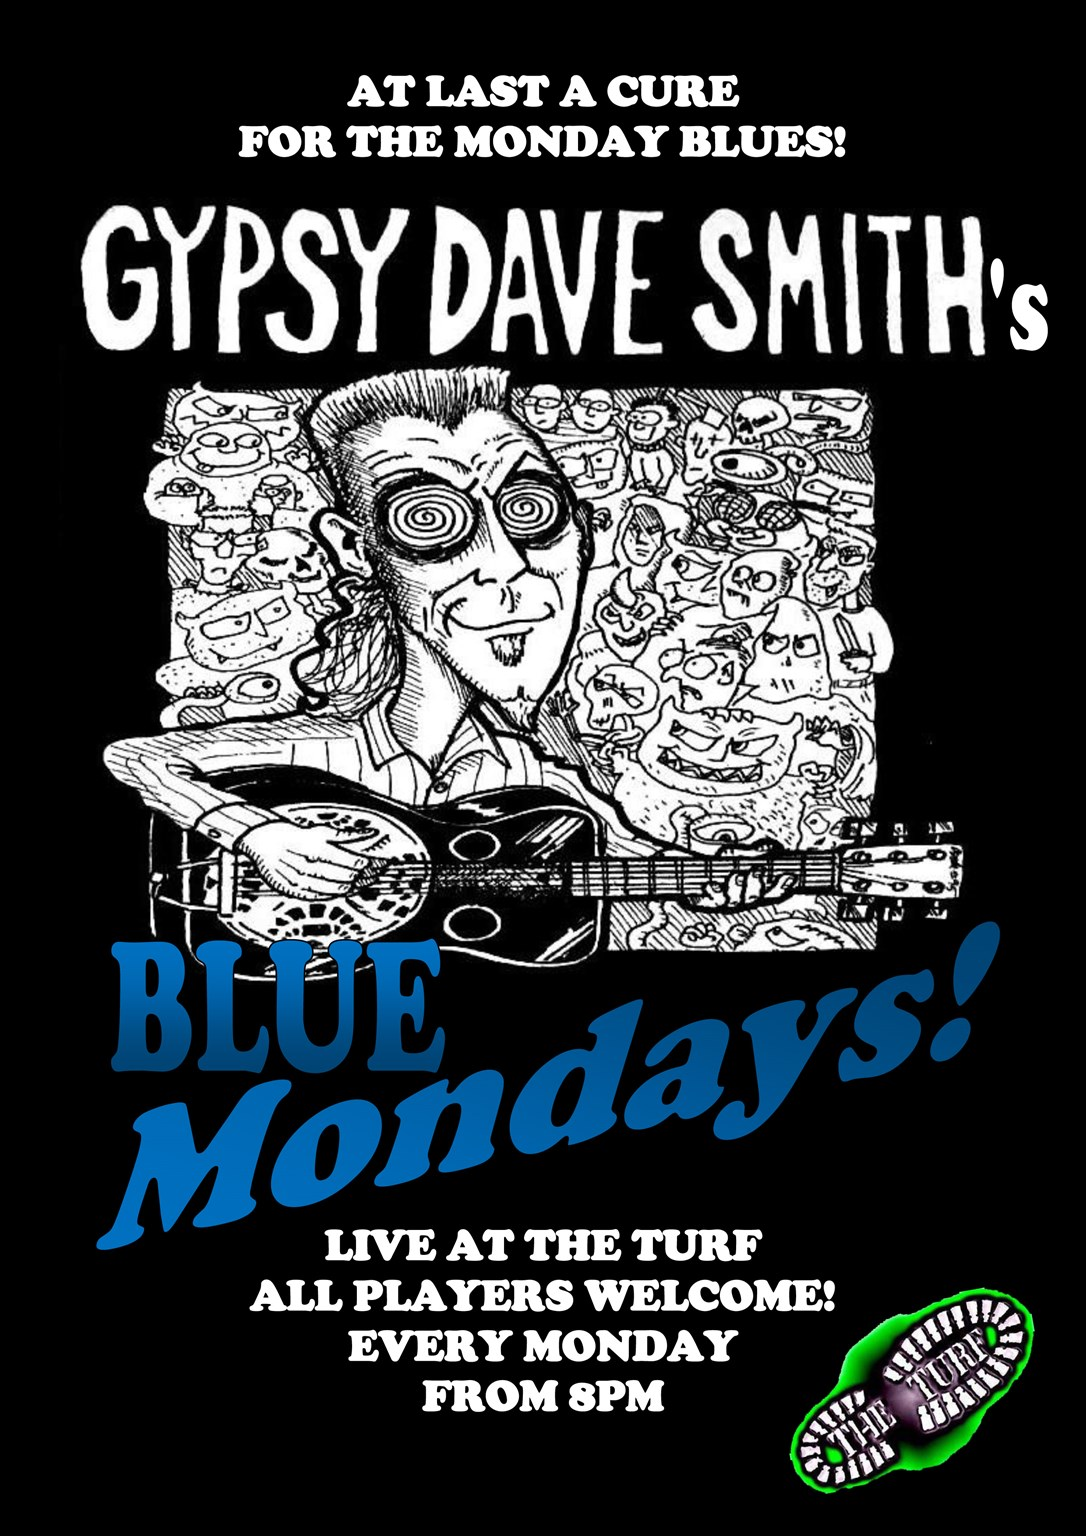 GYPSY DAVE'S BLUE MONDAYS